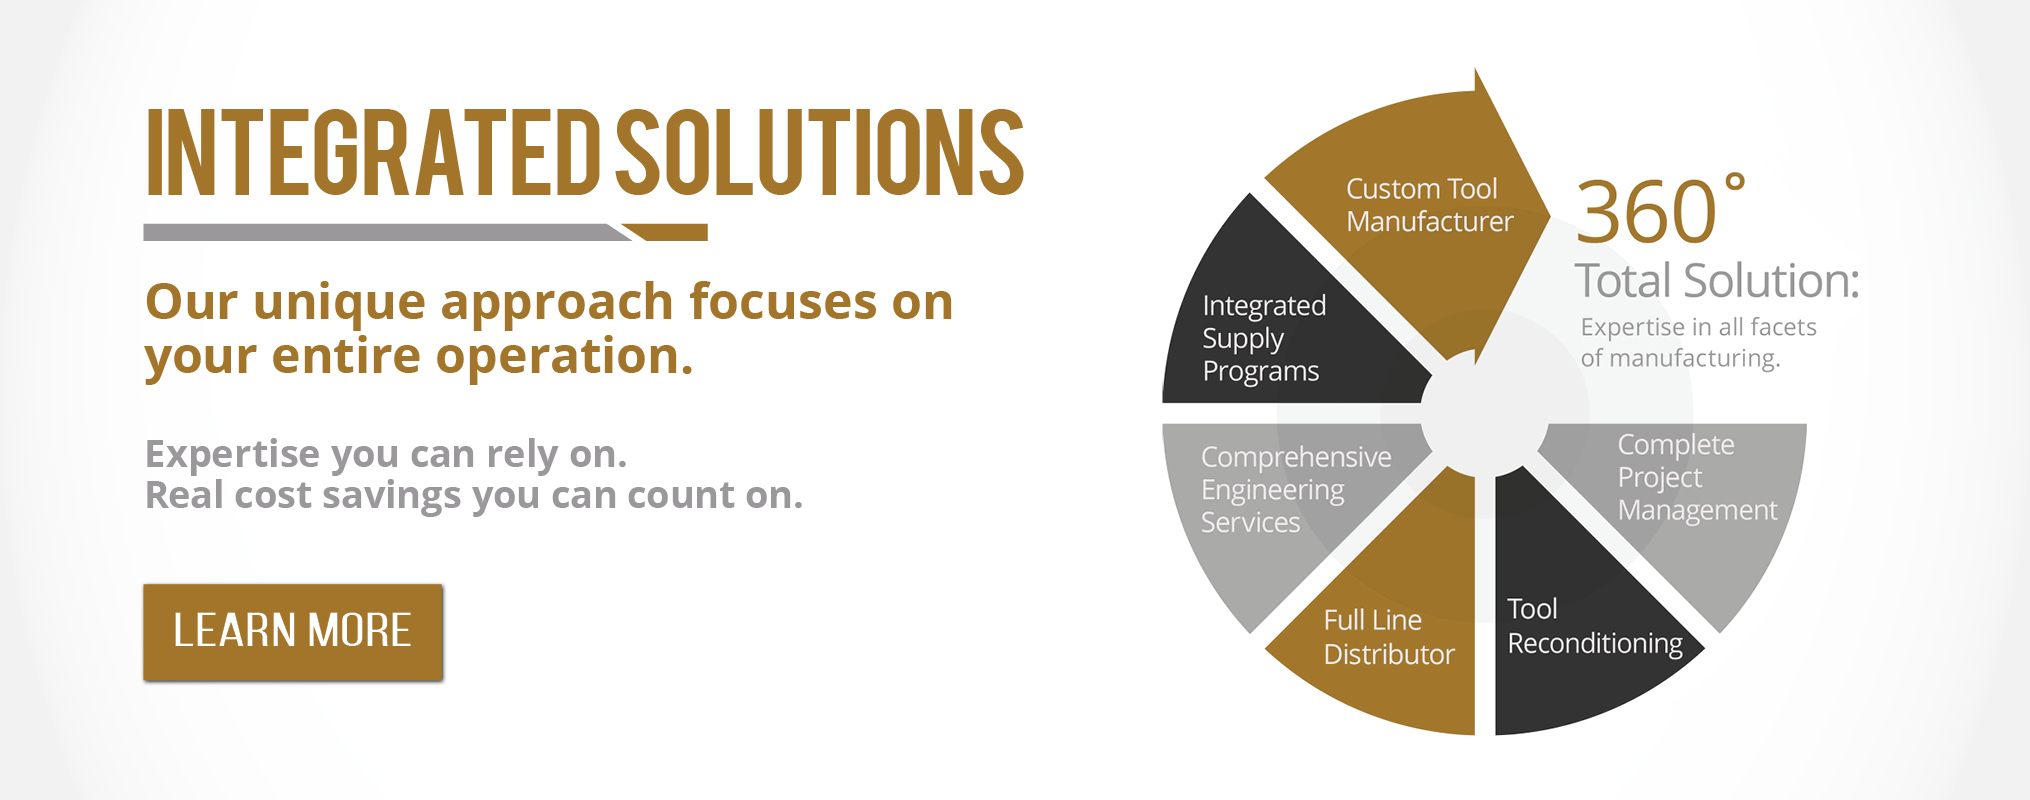 1 - 2015 - Integrated Solutions